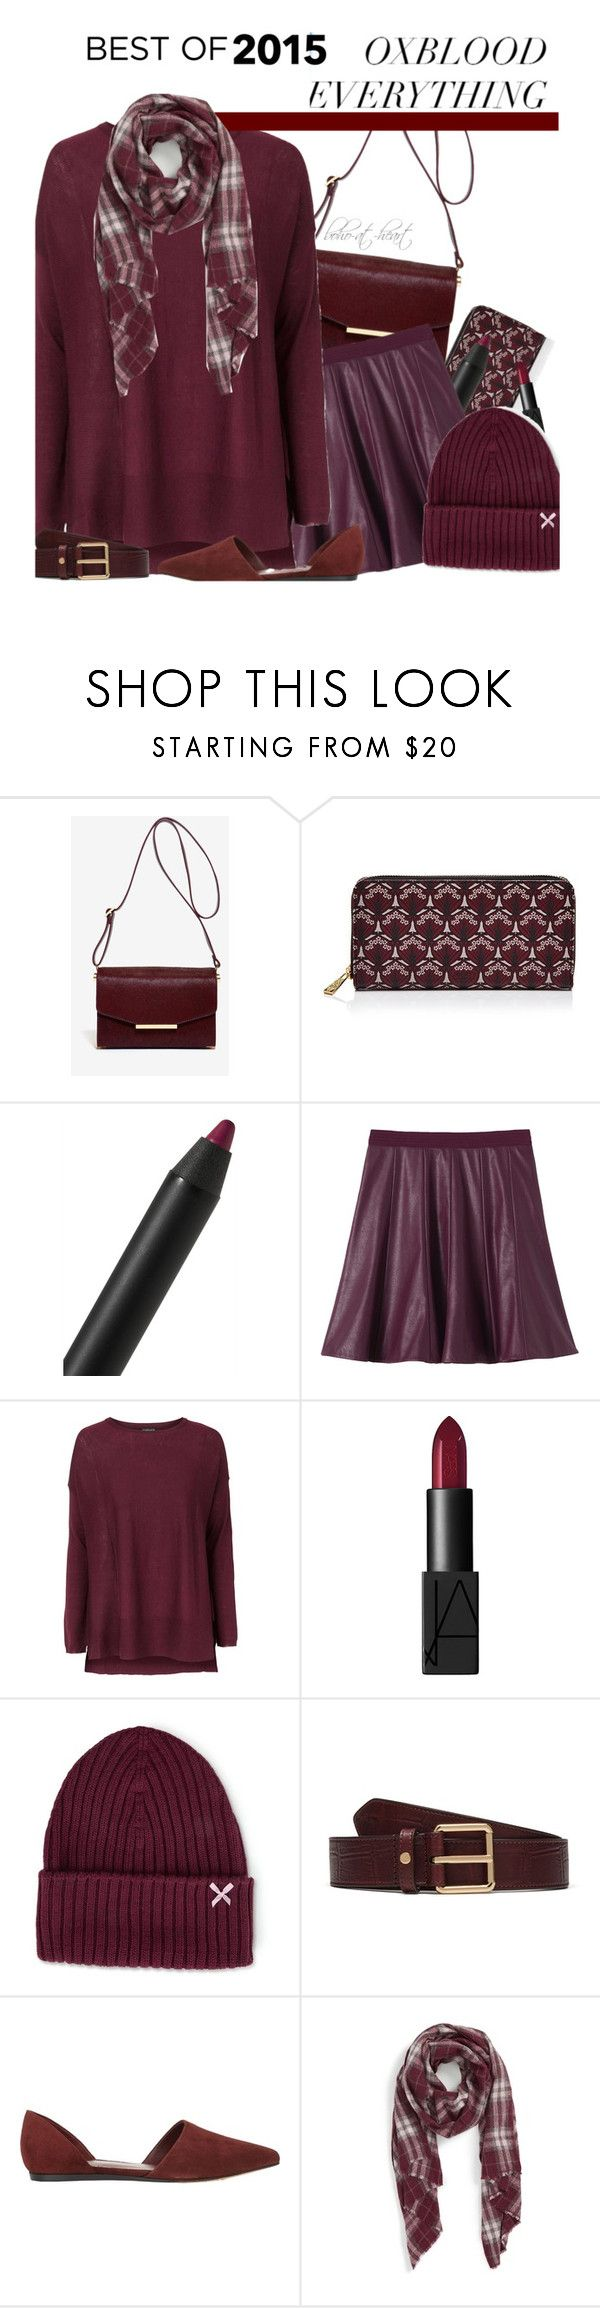 """""""Trends of 2015: Oxblood"""" by boho-at-heart ❤ liked on Polyvore featuring Ted Baker, Liberty, Burberry, Rebecca Taylor, Topshop, NARS Cosmetics, Silver Spoon Attire, Mulberry, Vince and Sole Society"""